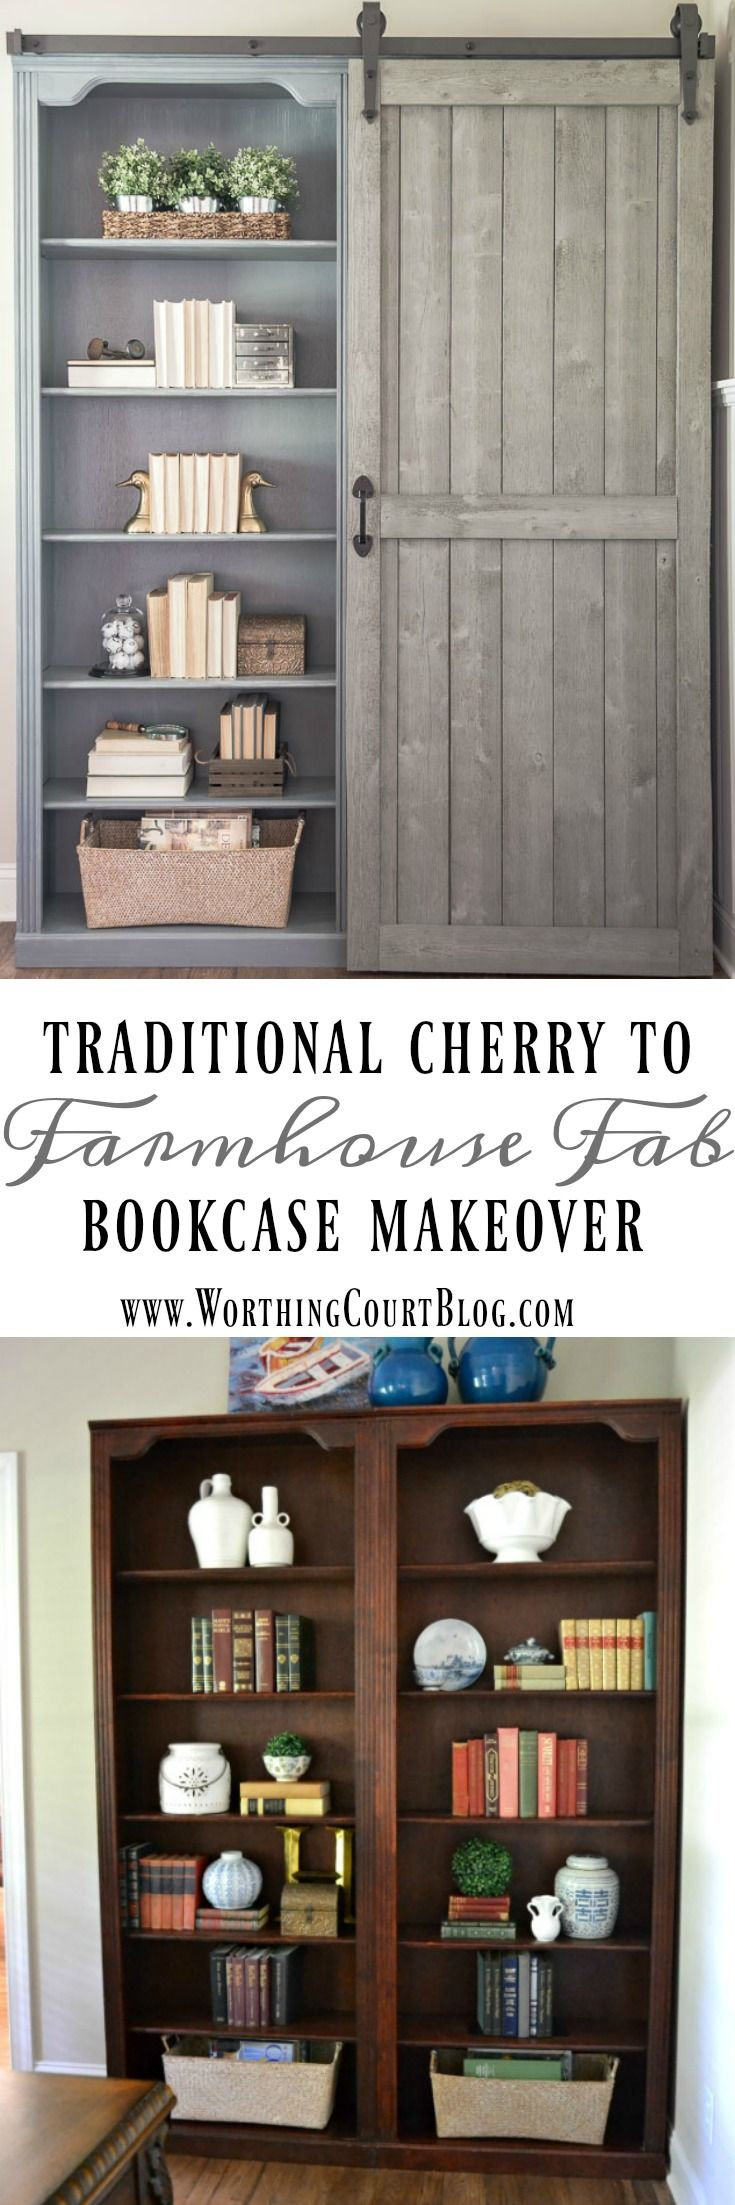 Bookcase Makeover - Traditional Cherry To Farmhouse Fab